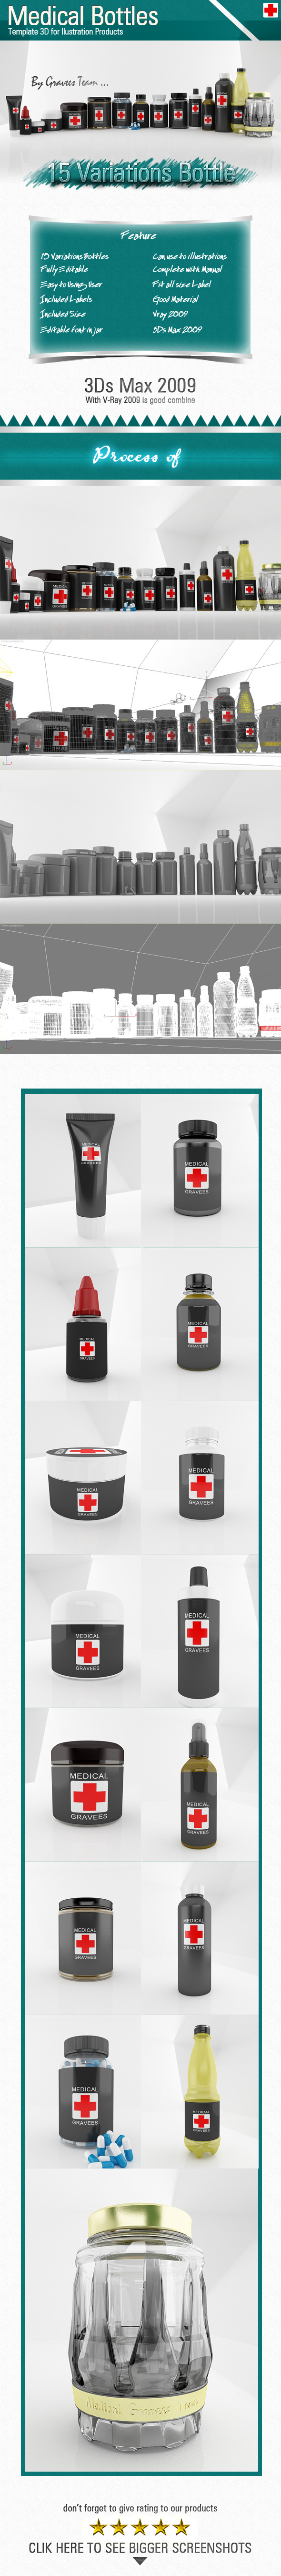 Medical Bottles - 3DOcean Item for Sale